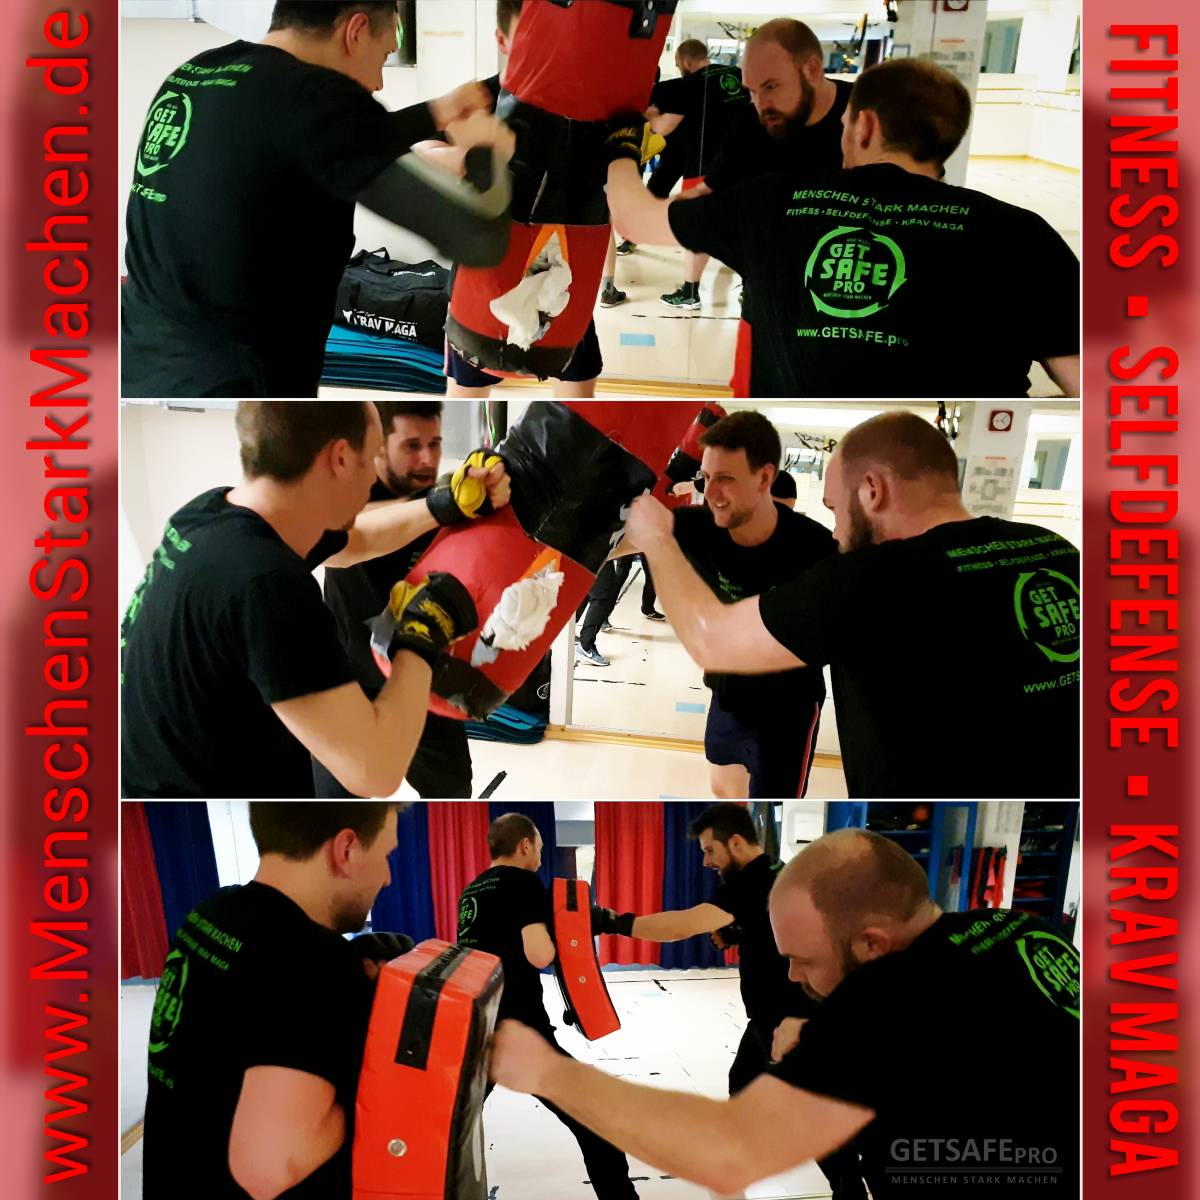 GETSAFEpro Krav Maga Training Mainz Selbstverteidigung Fitness-Center Mainz City (61)